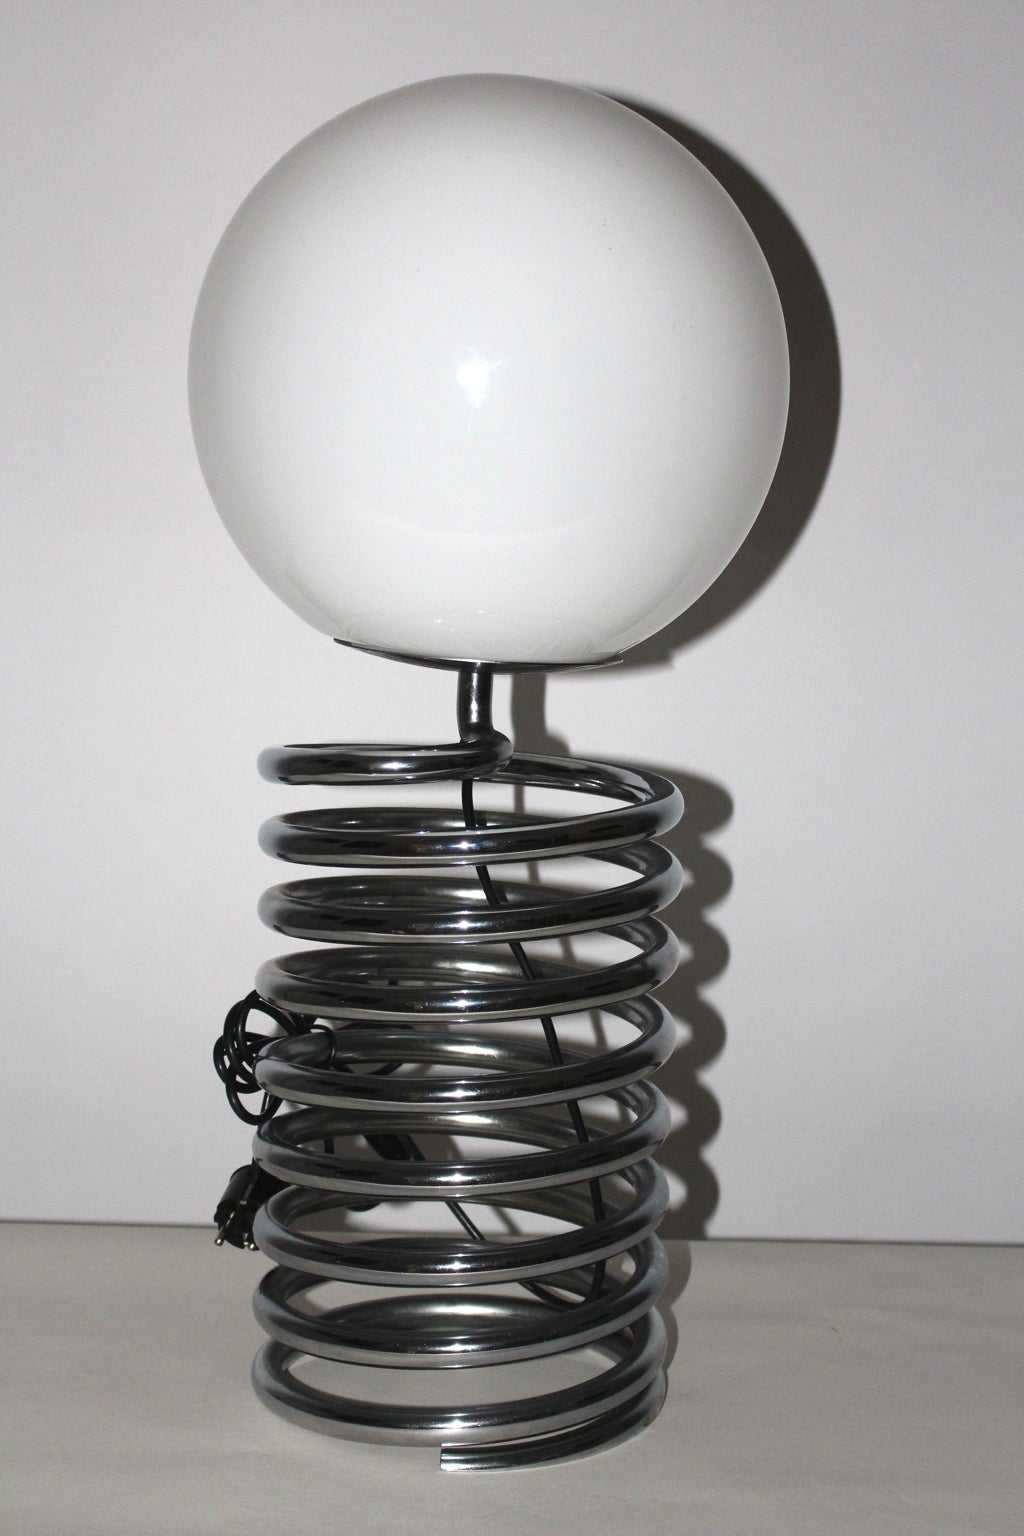 This table lamp shows a chromed spring base with an opal shade. Also onesocket E 27 and on/off switch. This early version is very rare and documented. Good Vintage Condition All measures are approximate.